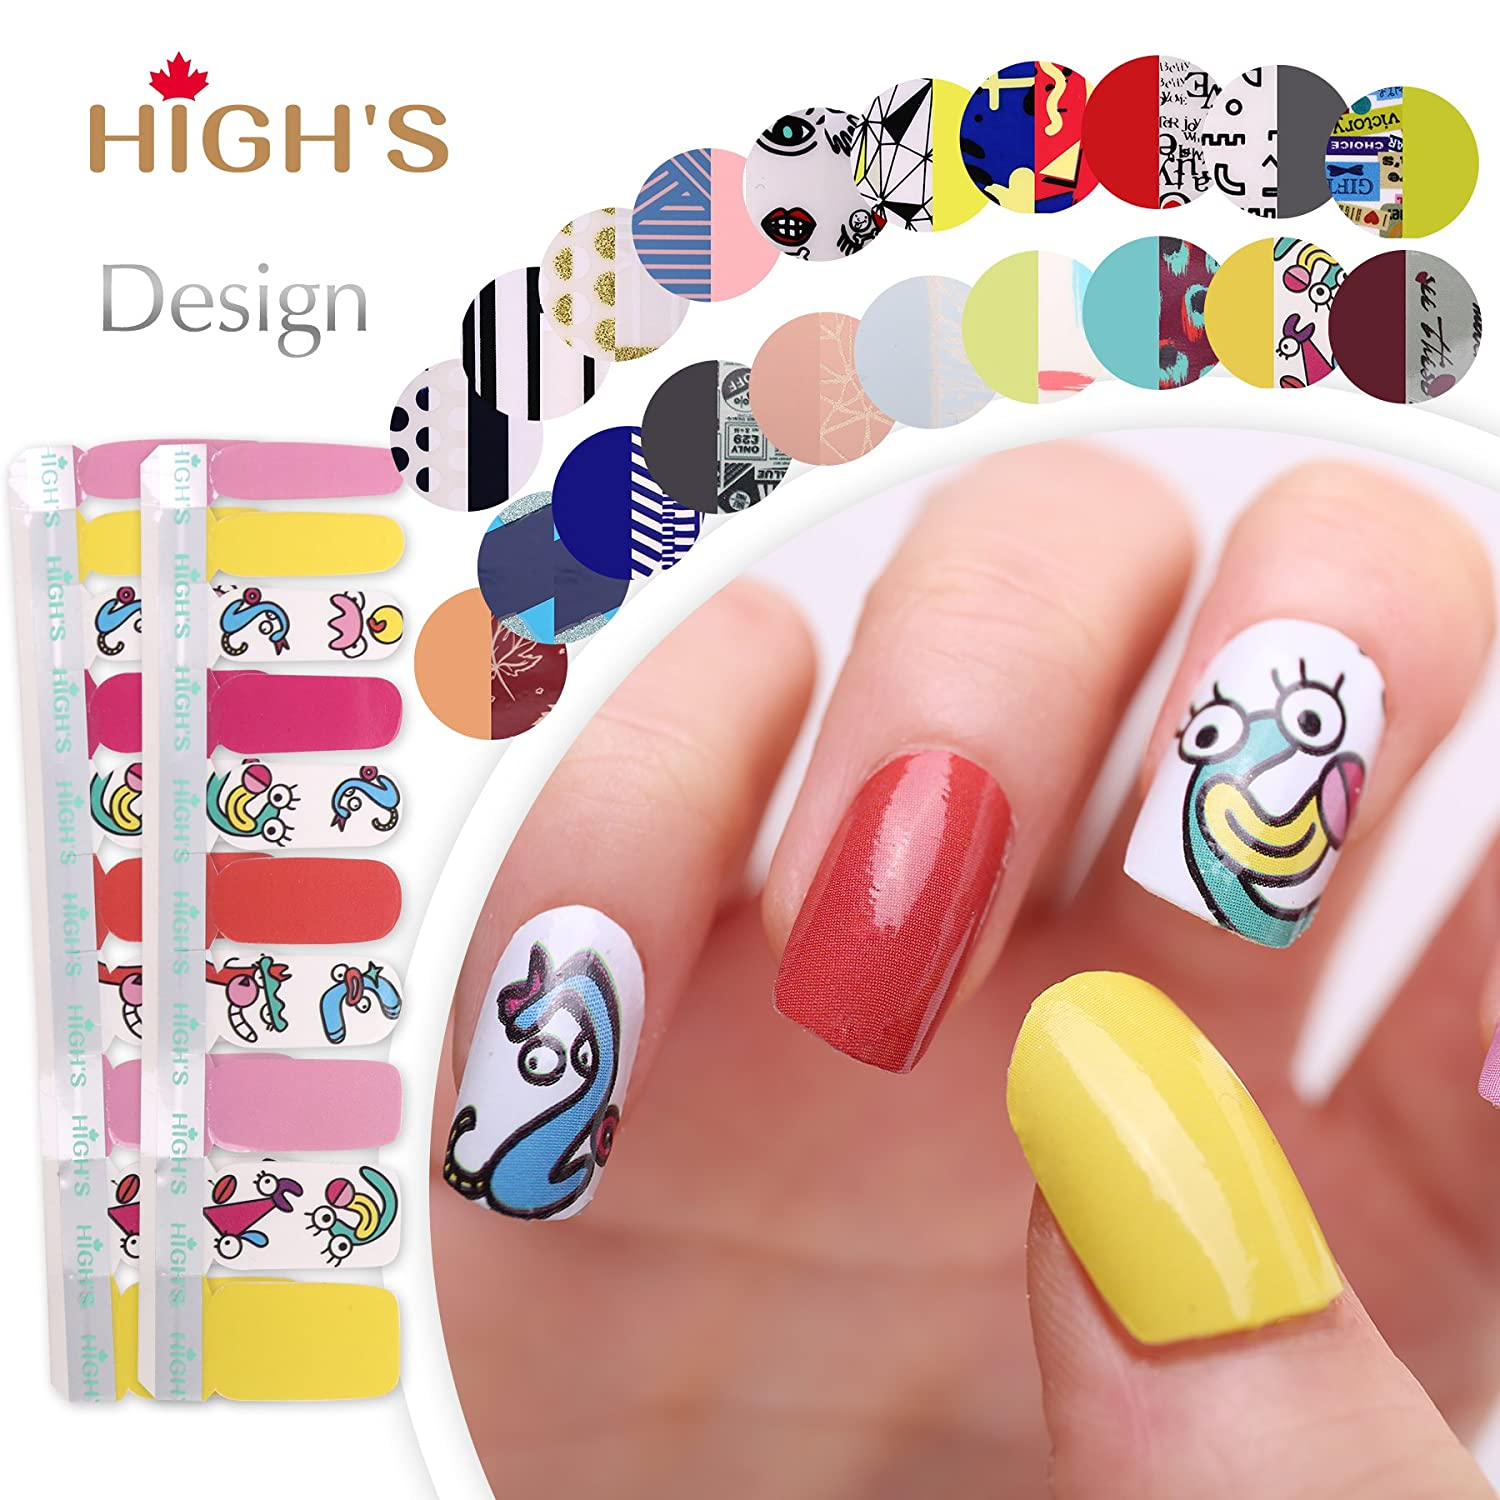 HIGH'S Exclusive Design Series Manicure Nail Polish Strips Nail Wraps, Cat HIGH' S